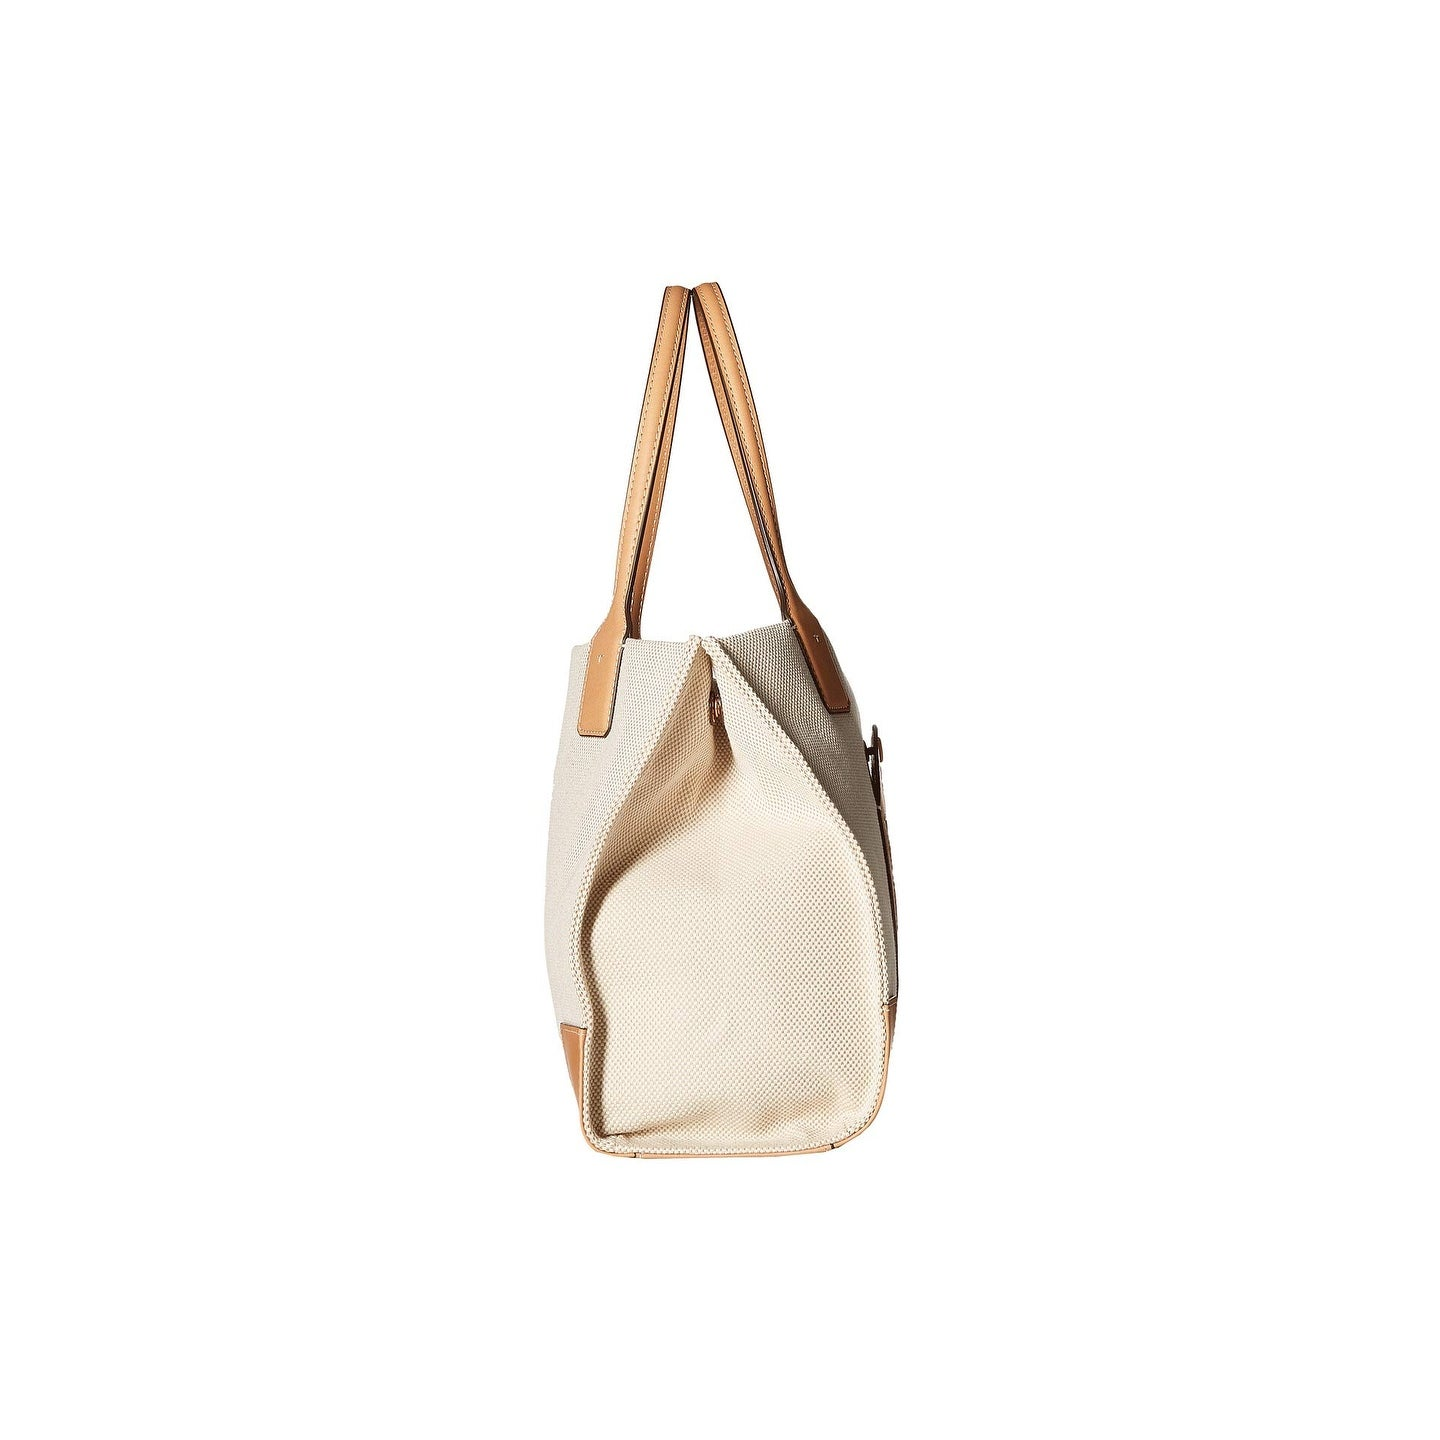 3c81a11c30a26 Shop Tory Burch Ella Canvas Mini Tote - Free Shipping Today - Overstock -  26980868